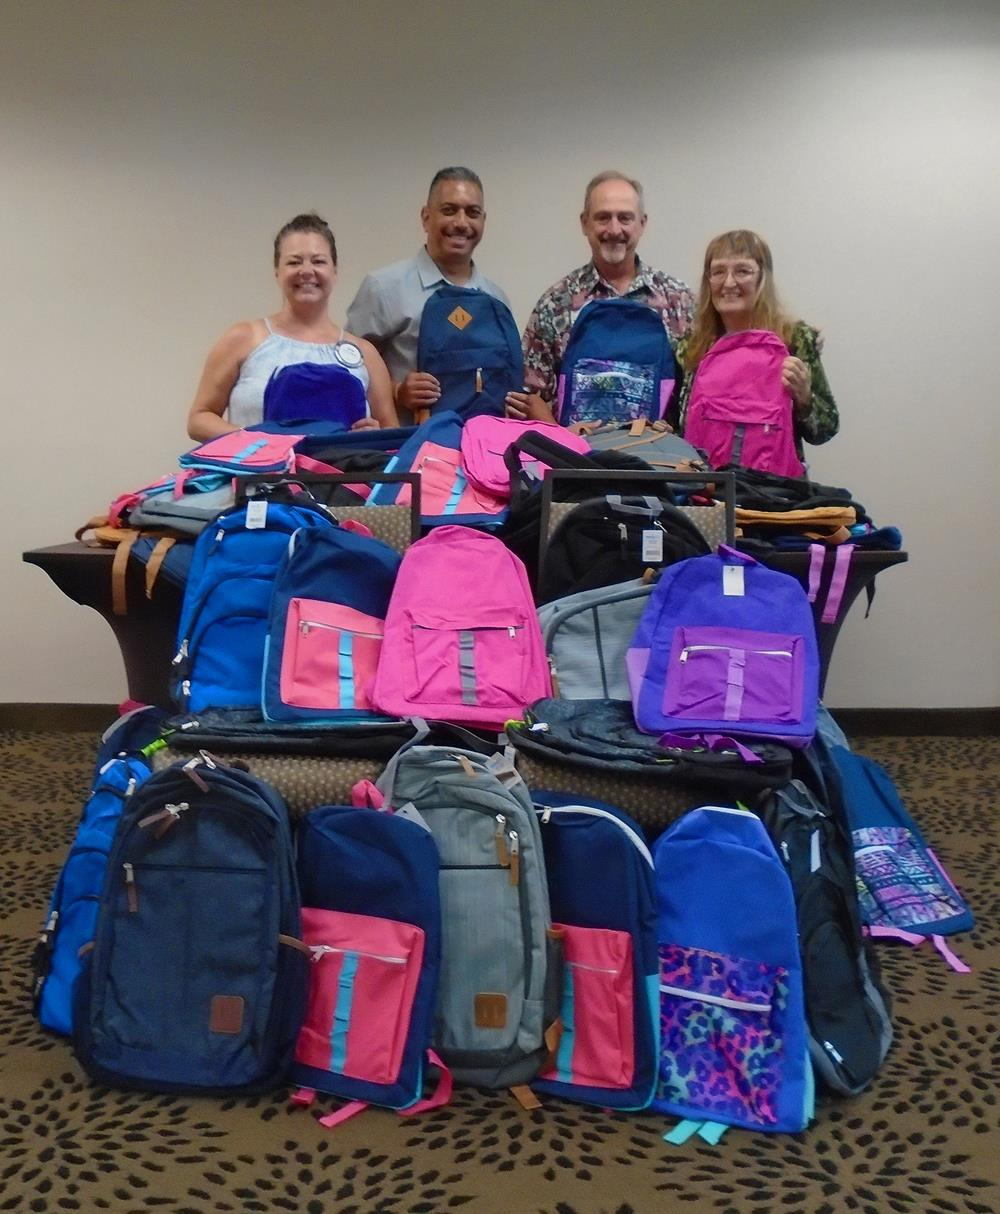 Officer Van Reyes of the Hawaii County Police Dept. accepting the backpacks